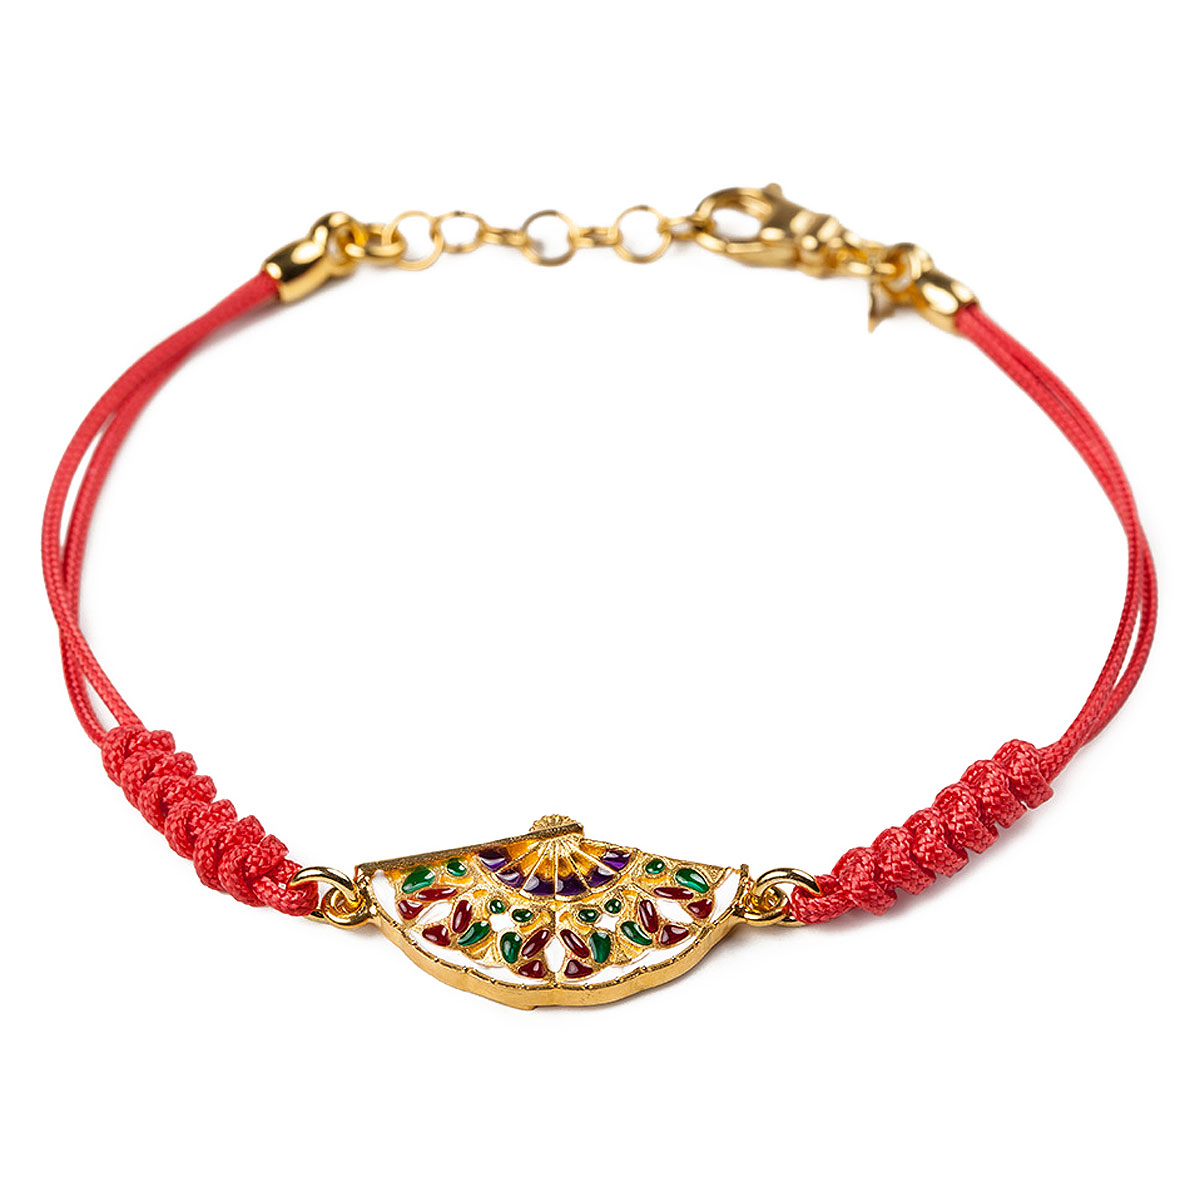 Image of Isola Bella Bracelet for Women, Red, Silver 925 Galvanized Gold, 2017